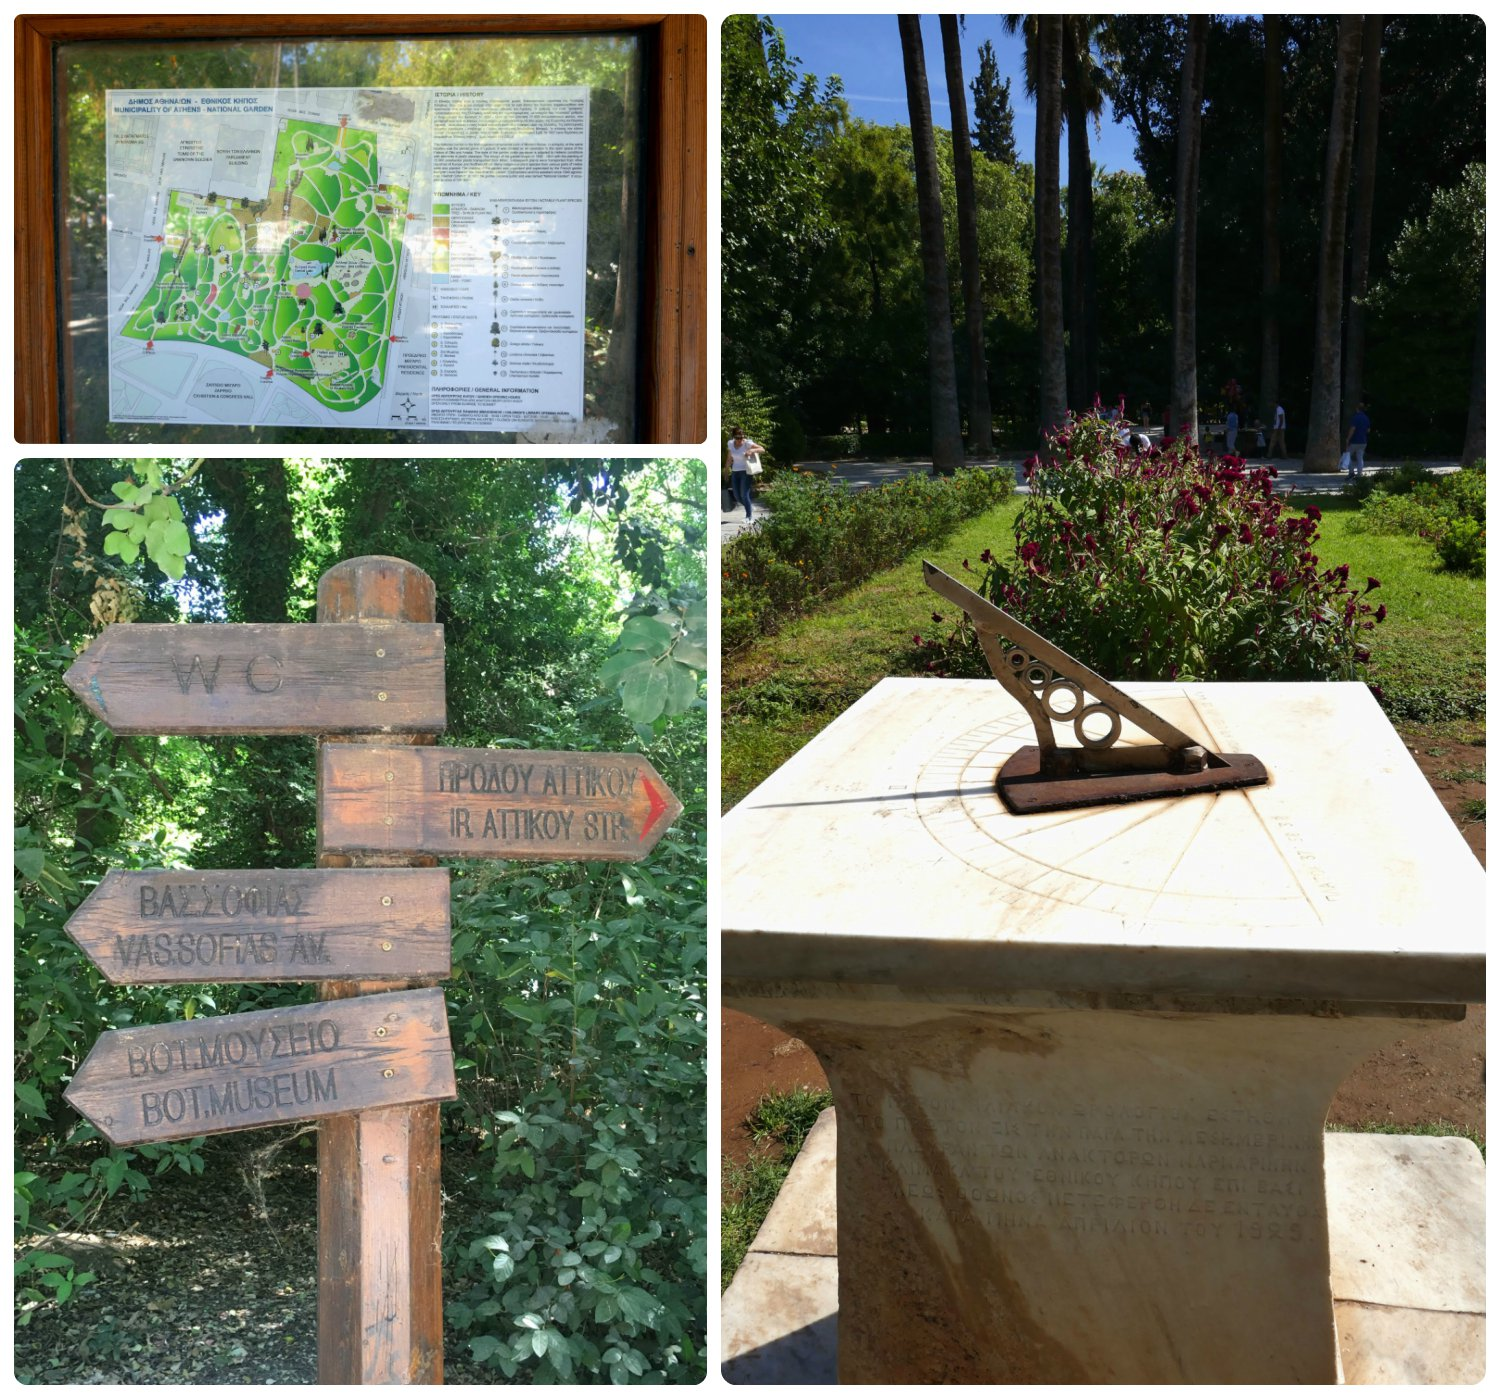 National Garden is a bit of a maze to explore, however there are maps and signs posted throughout the garden.